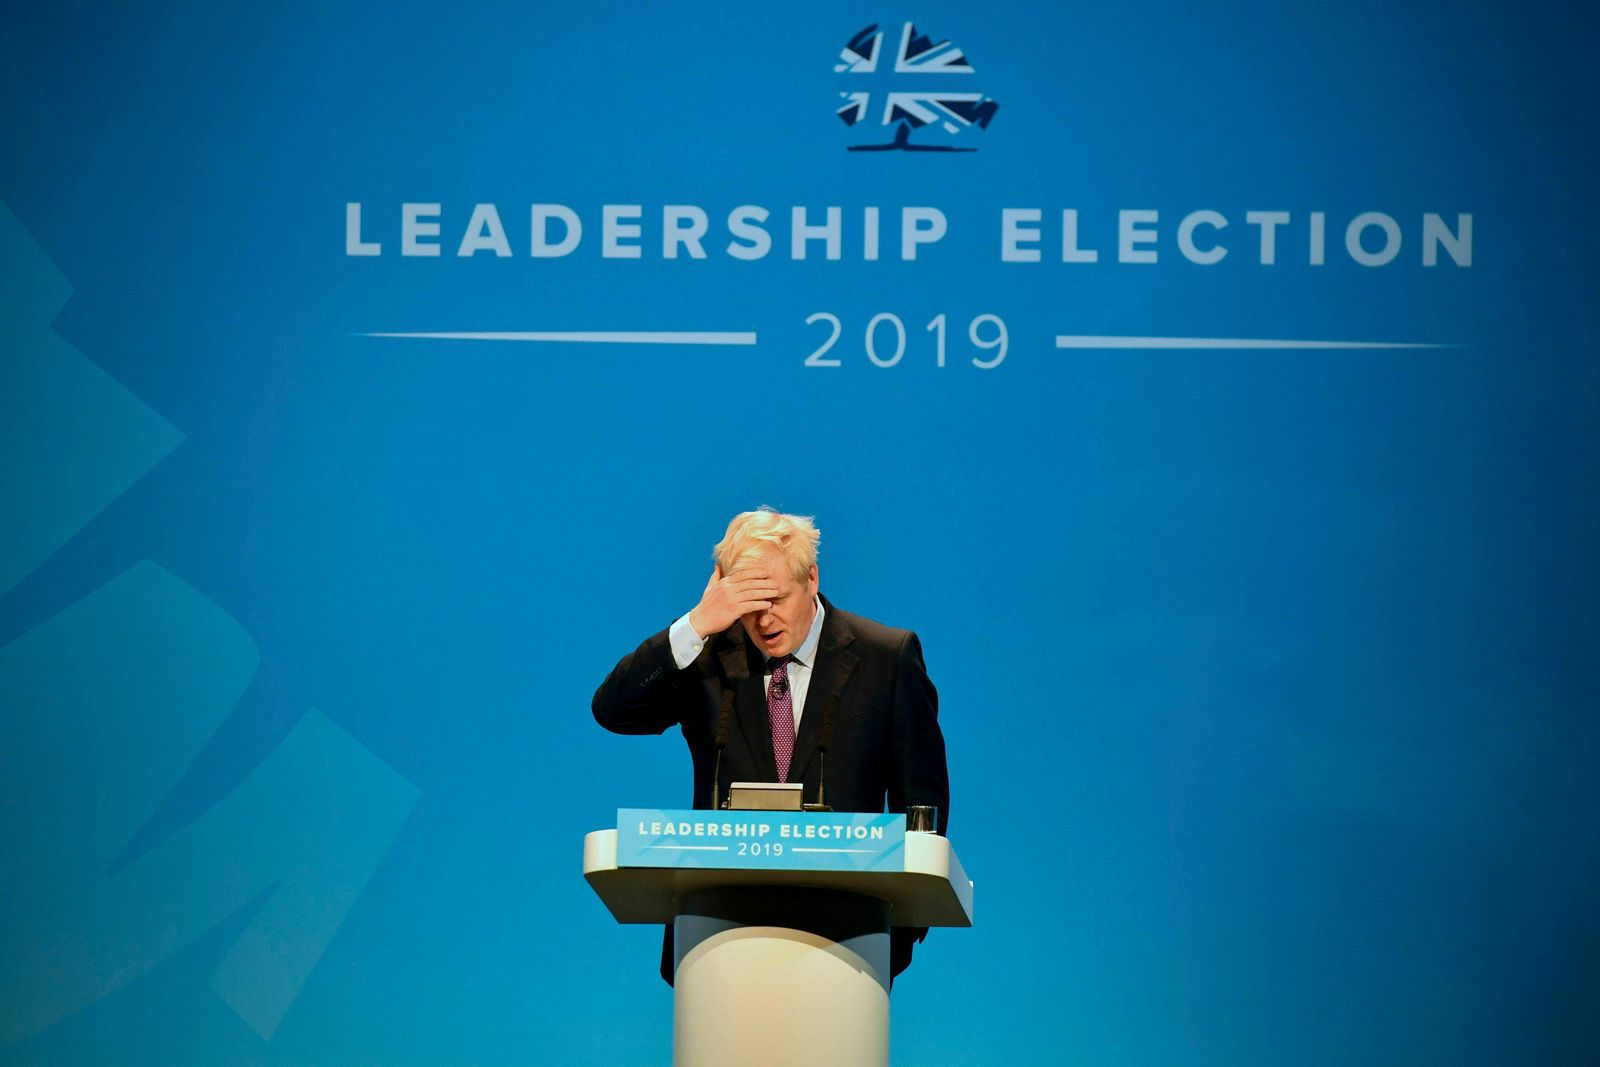 Conservative party leadership candidate Boris Johnson gestures, during the first party hustings at the ICC in Birmingham, England, Saturday June 22, 2019. (Ben Birchall/PA via AP)